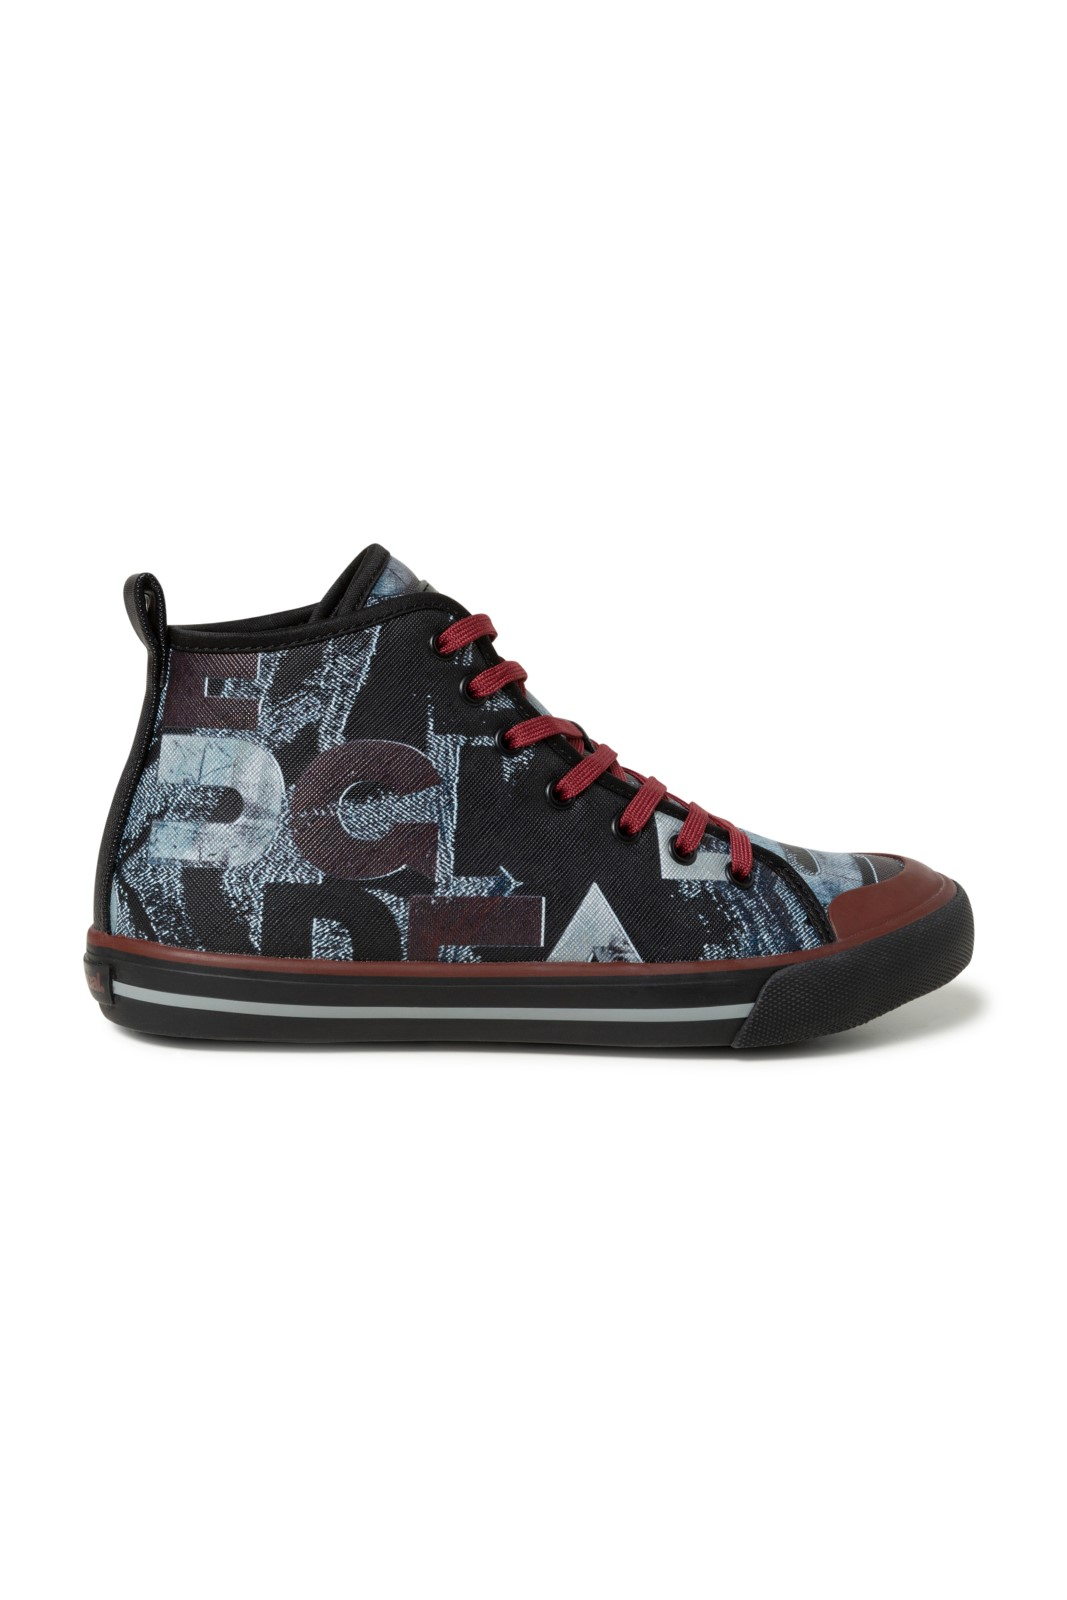 Desigual multicolor ankle high sneakers Shoes Sneaker High Desigual